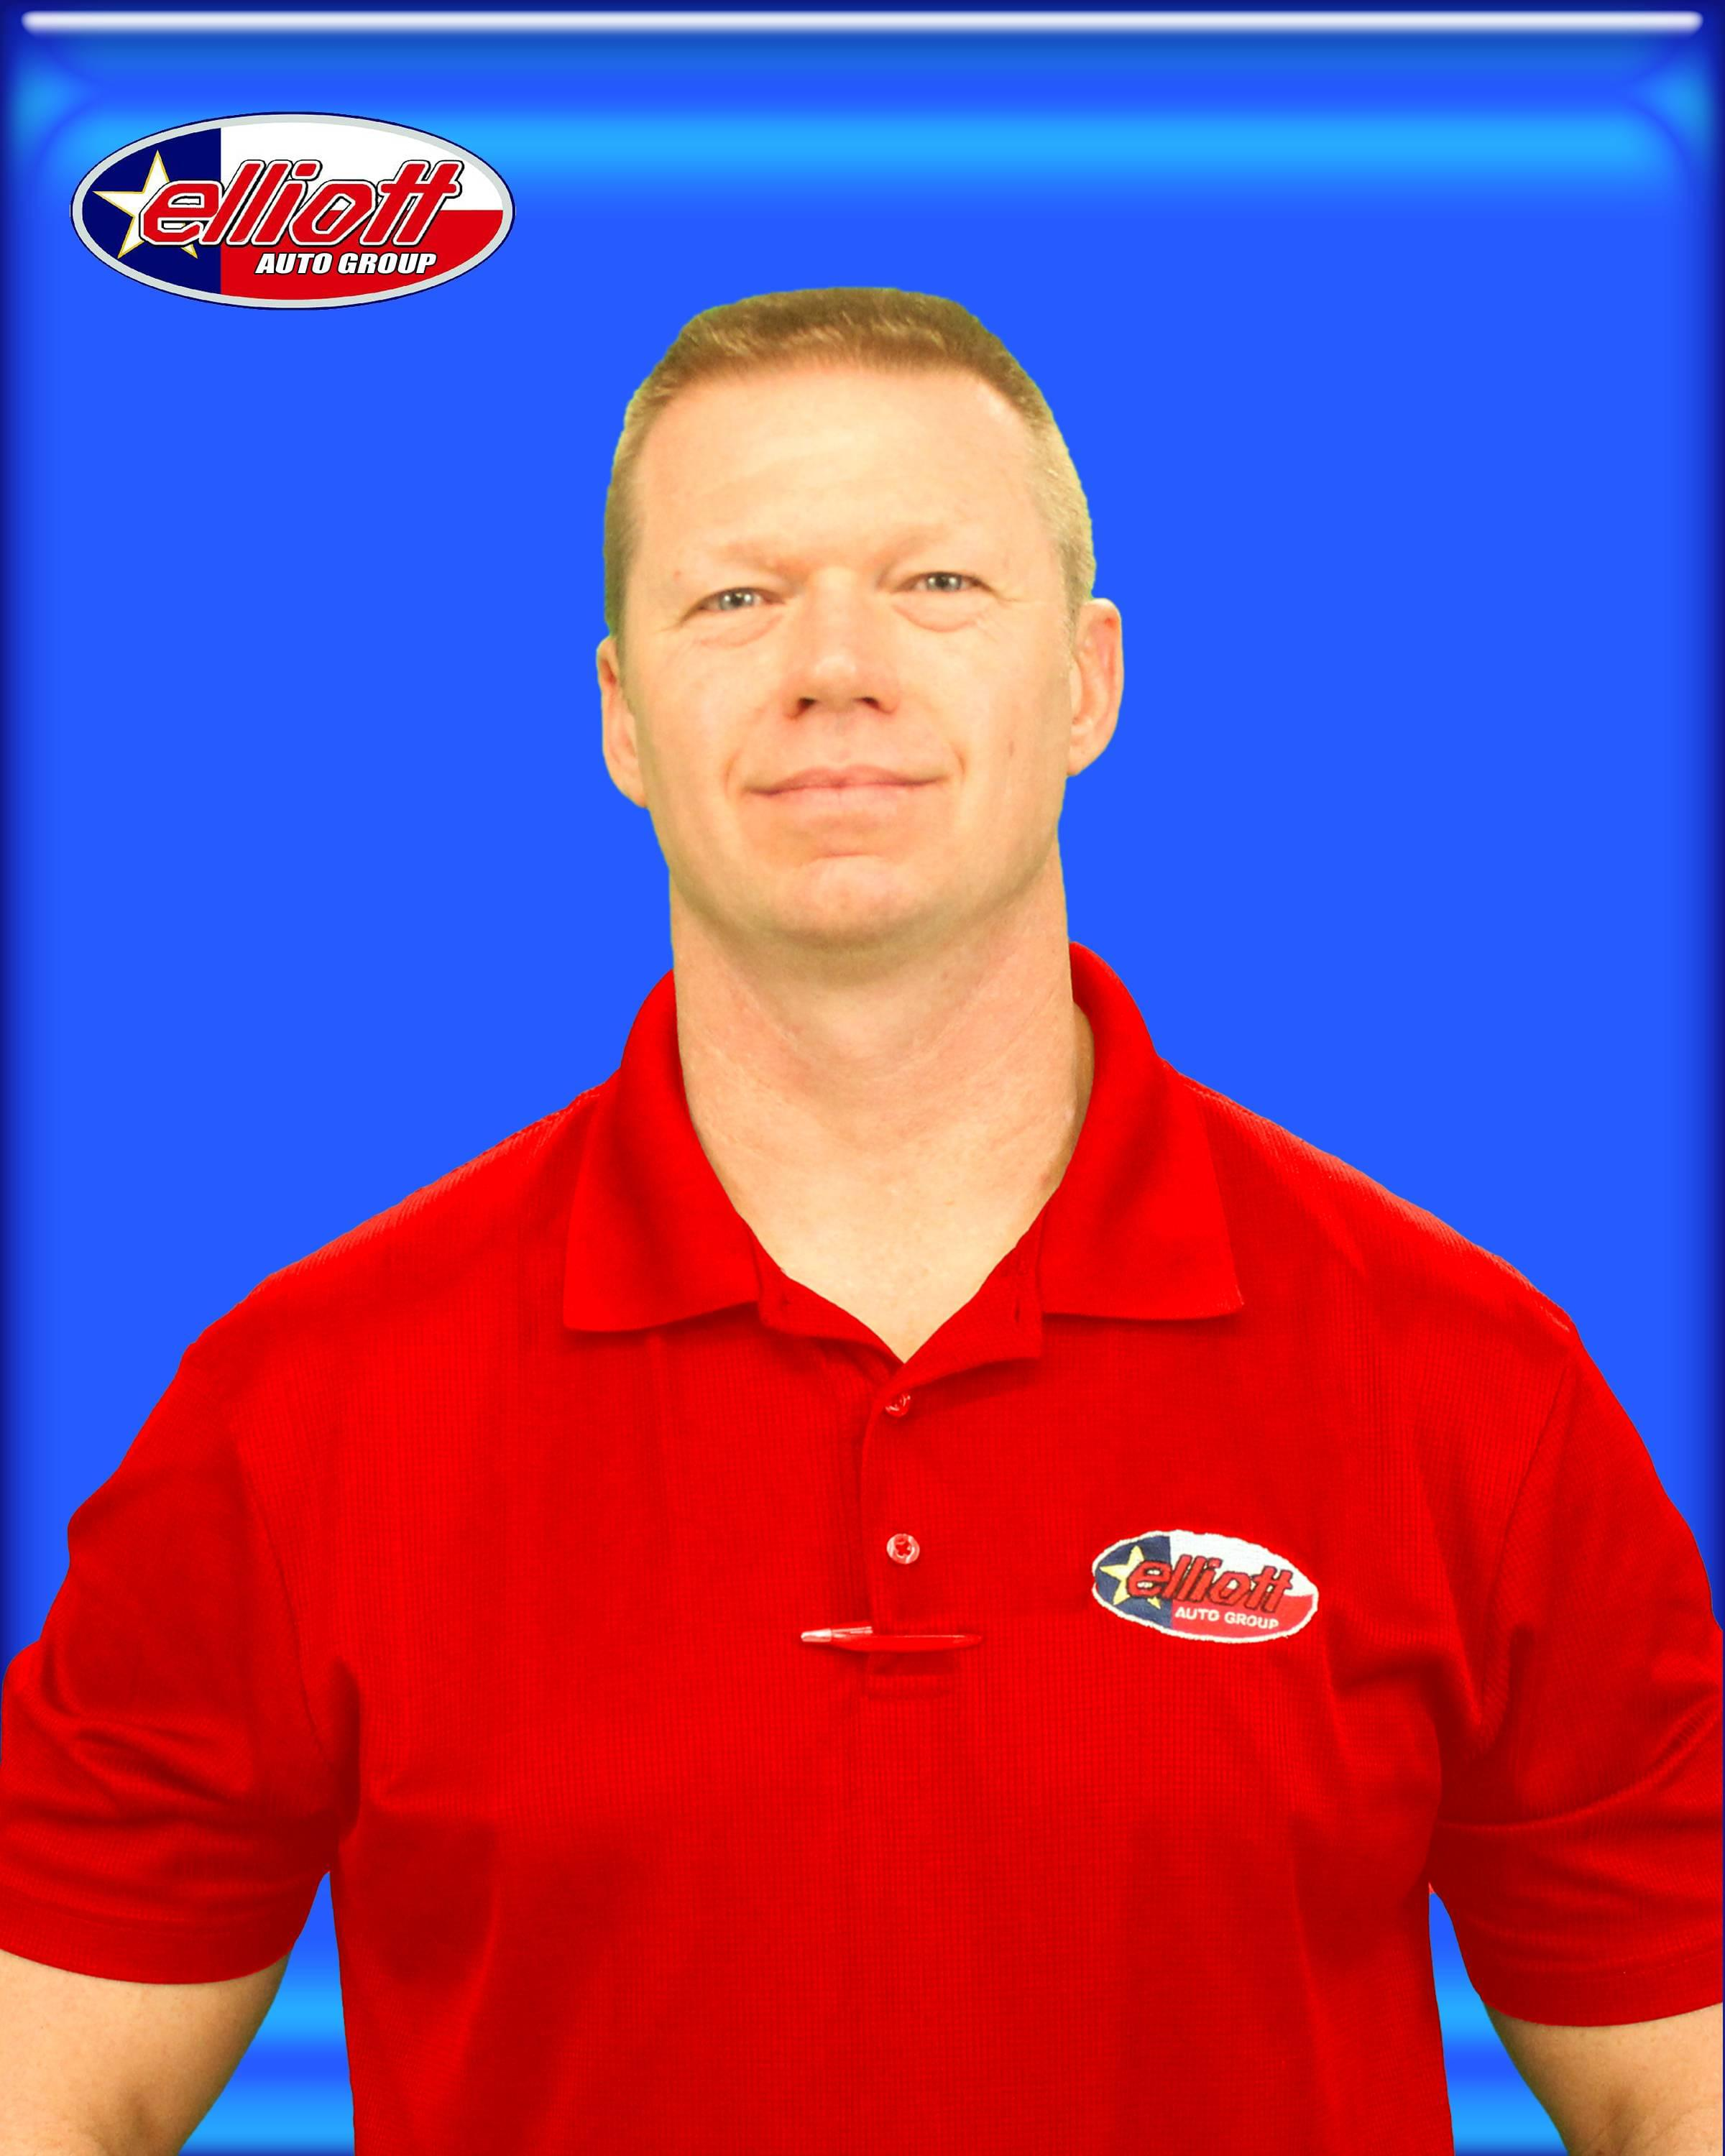 Richard Lowrey, Ford Parts Manager